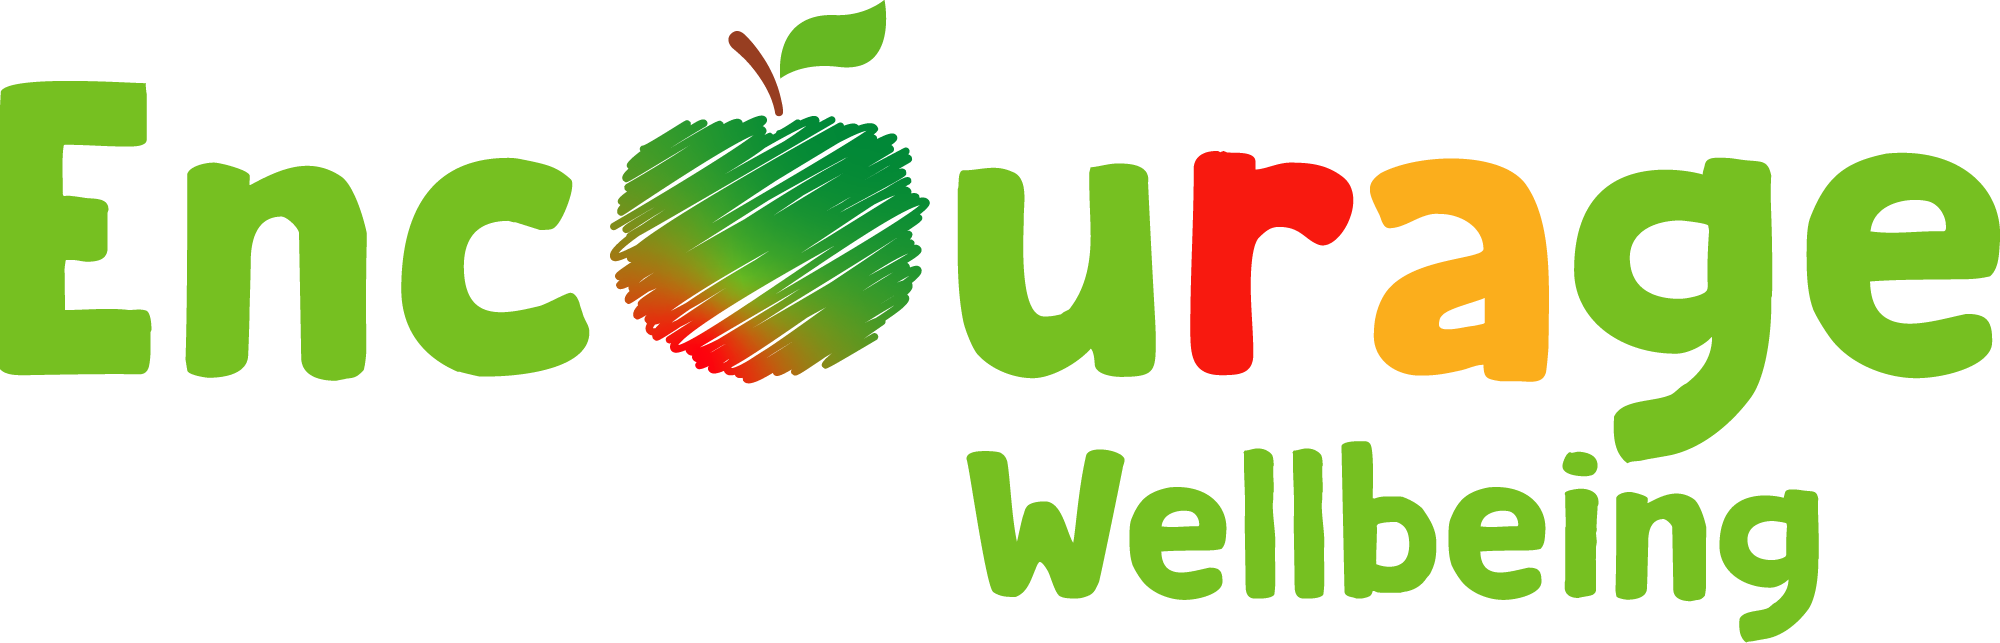 Image of Encourage Wellbeing